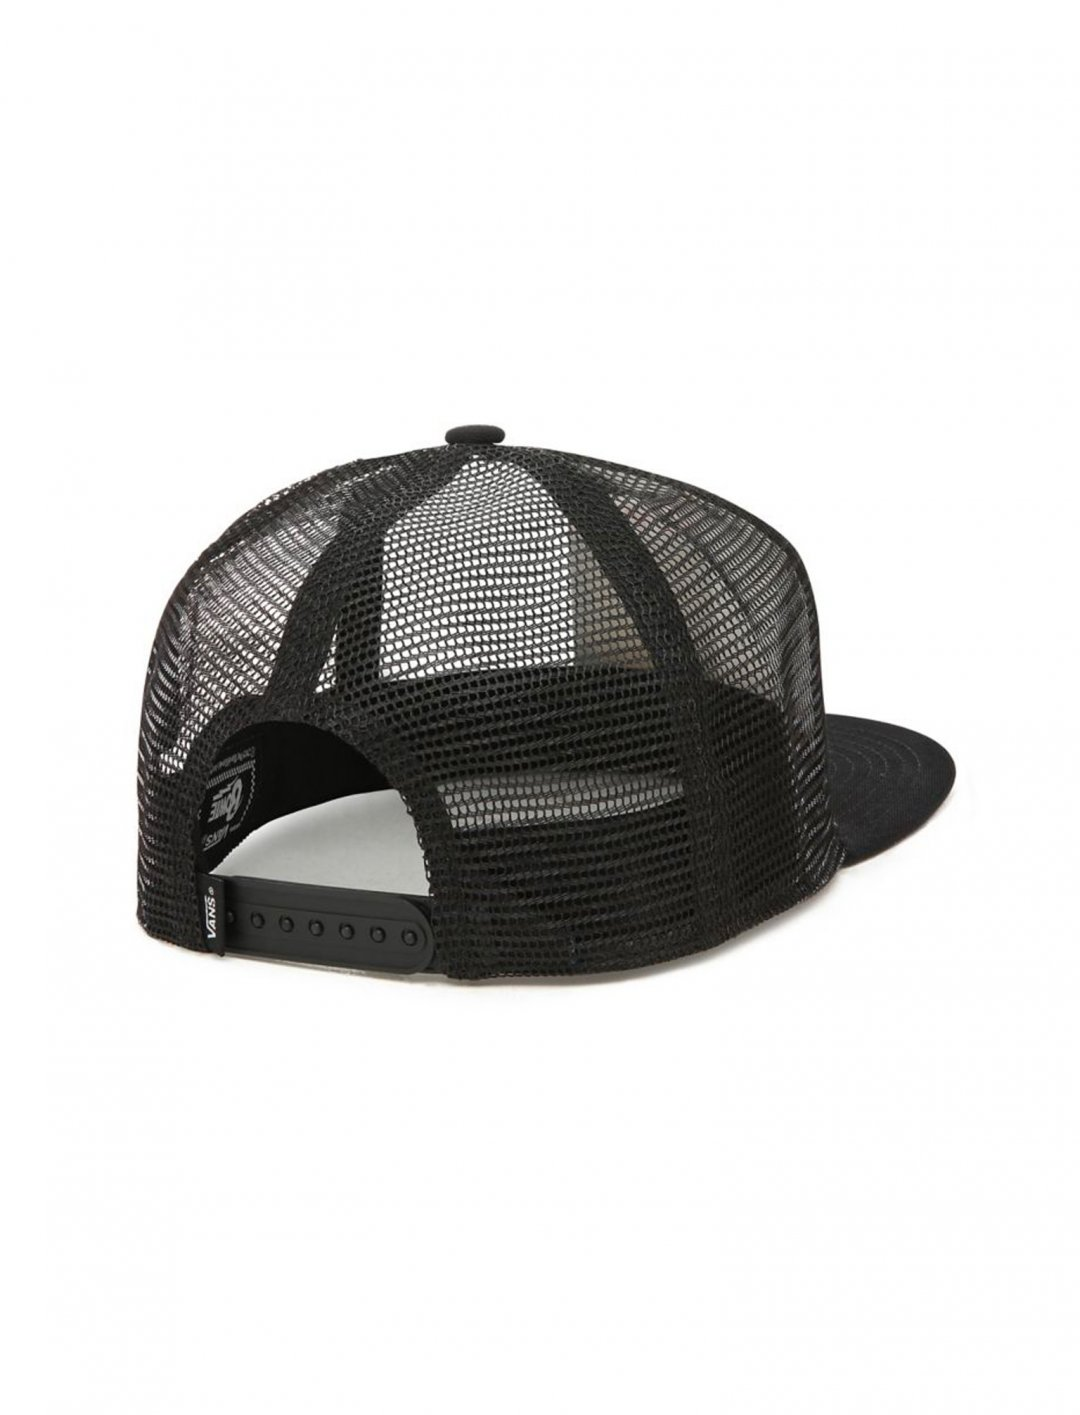 "Vans x DB Hat {""id"":16,""product_section_id"":1,""name"":""Accessories"",""order"":15} Vans x David Bowie"